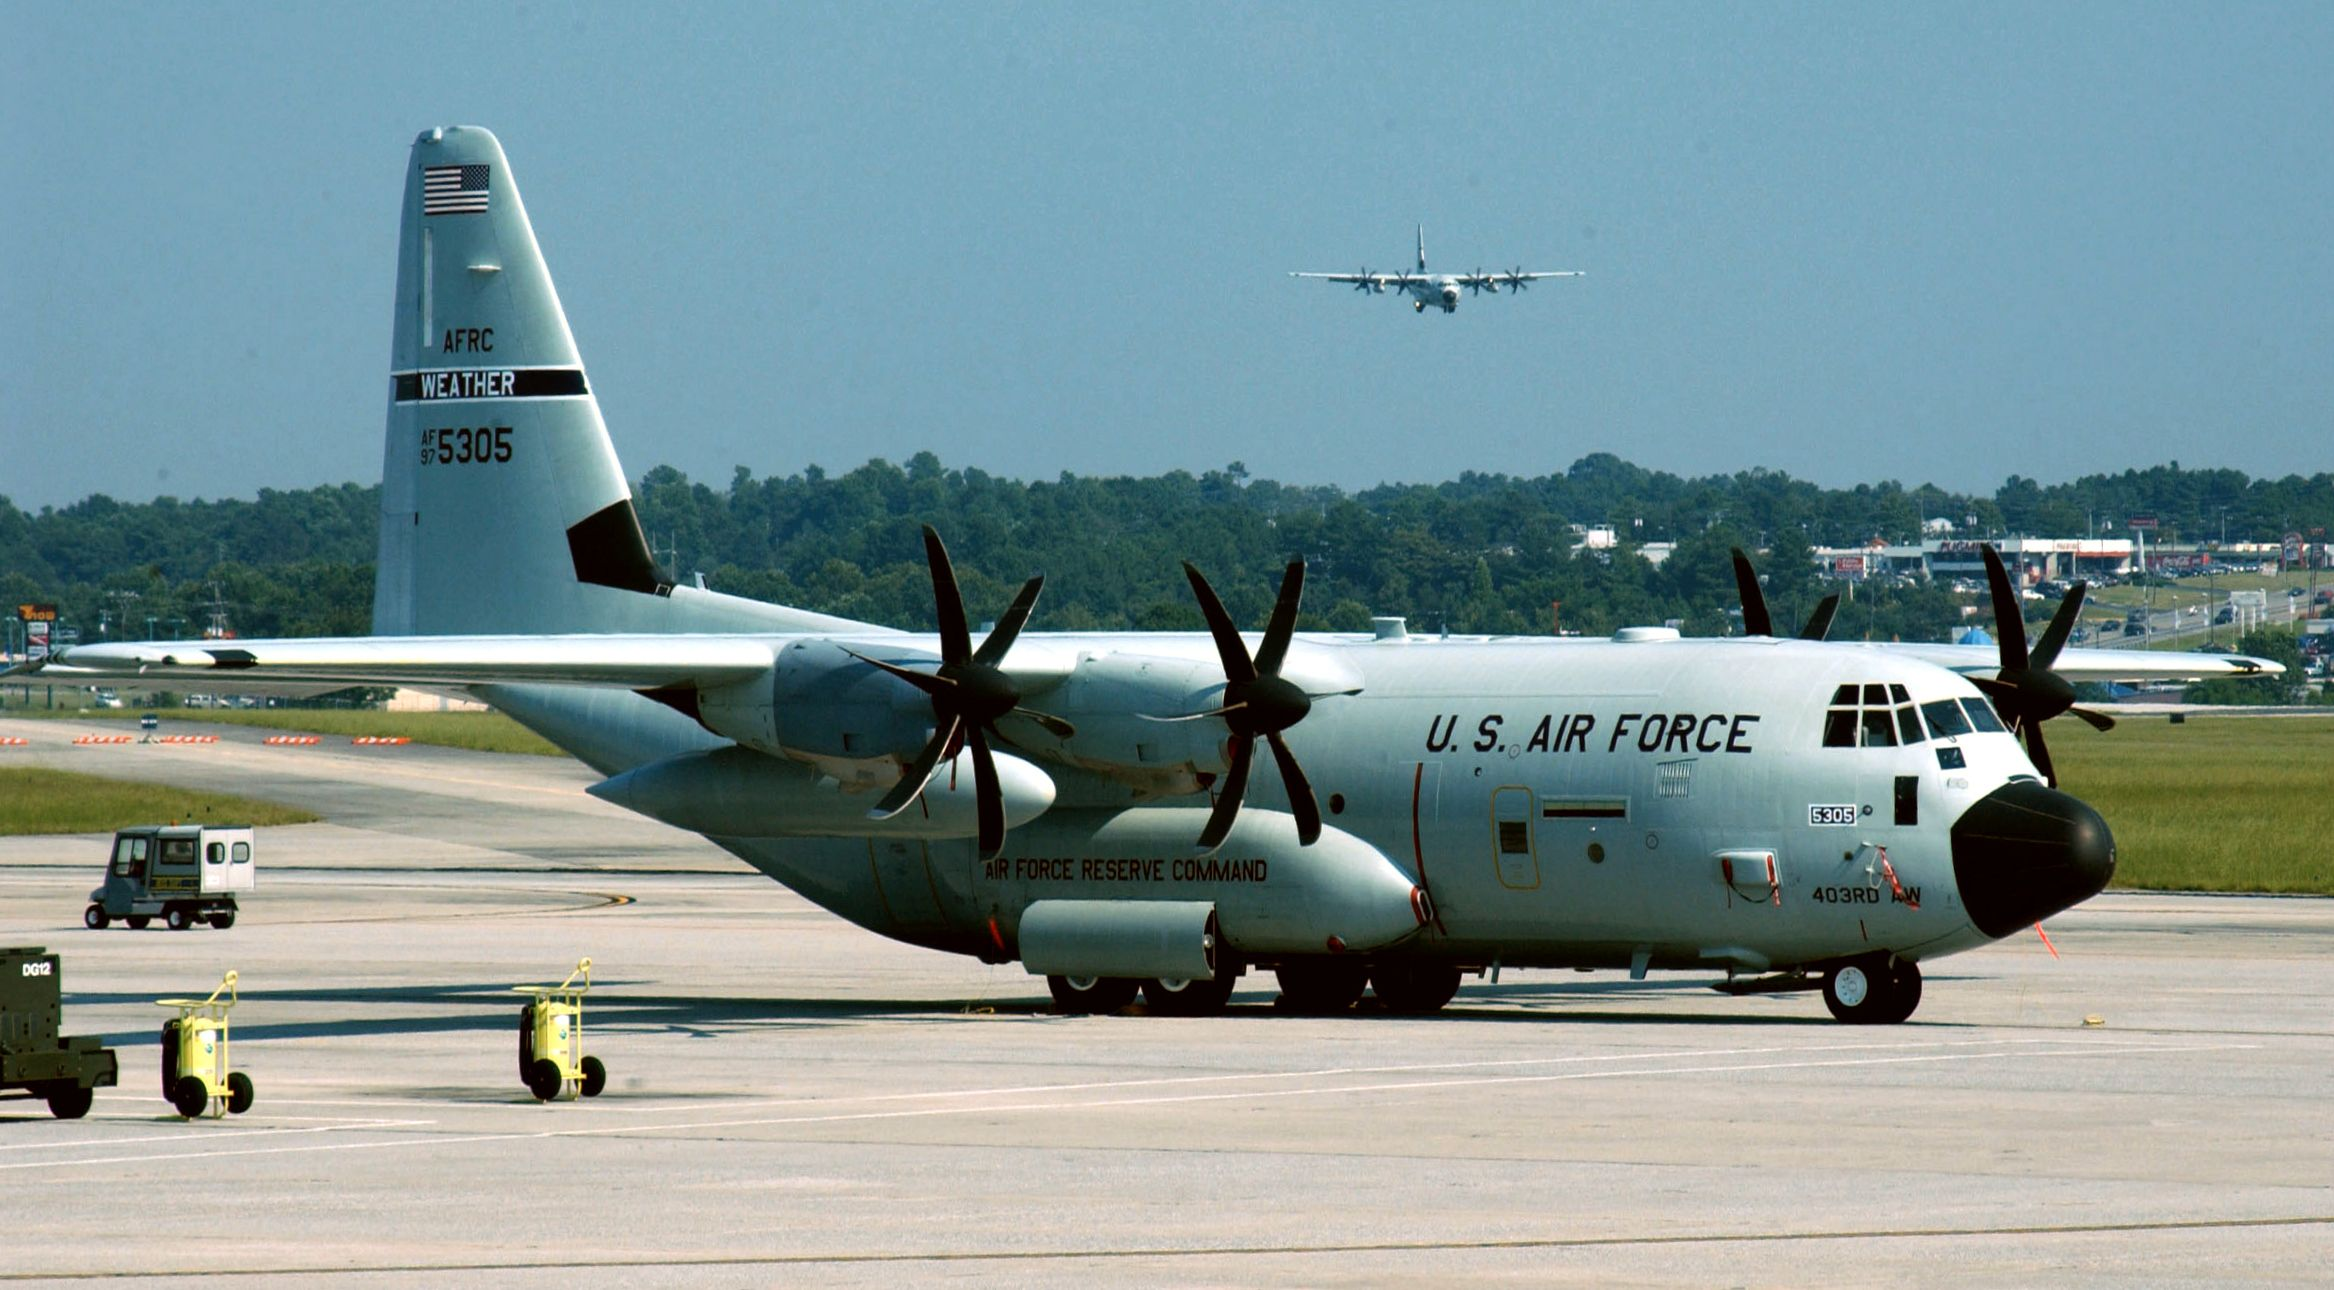 Lockheed Martin WC130J weather monitoring aircraft